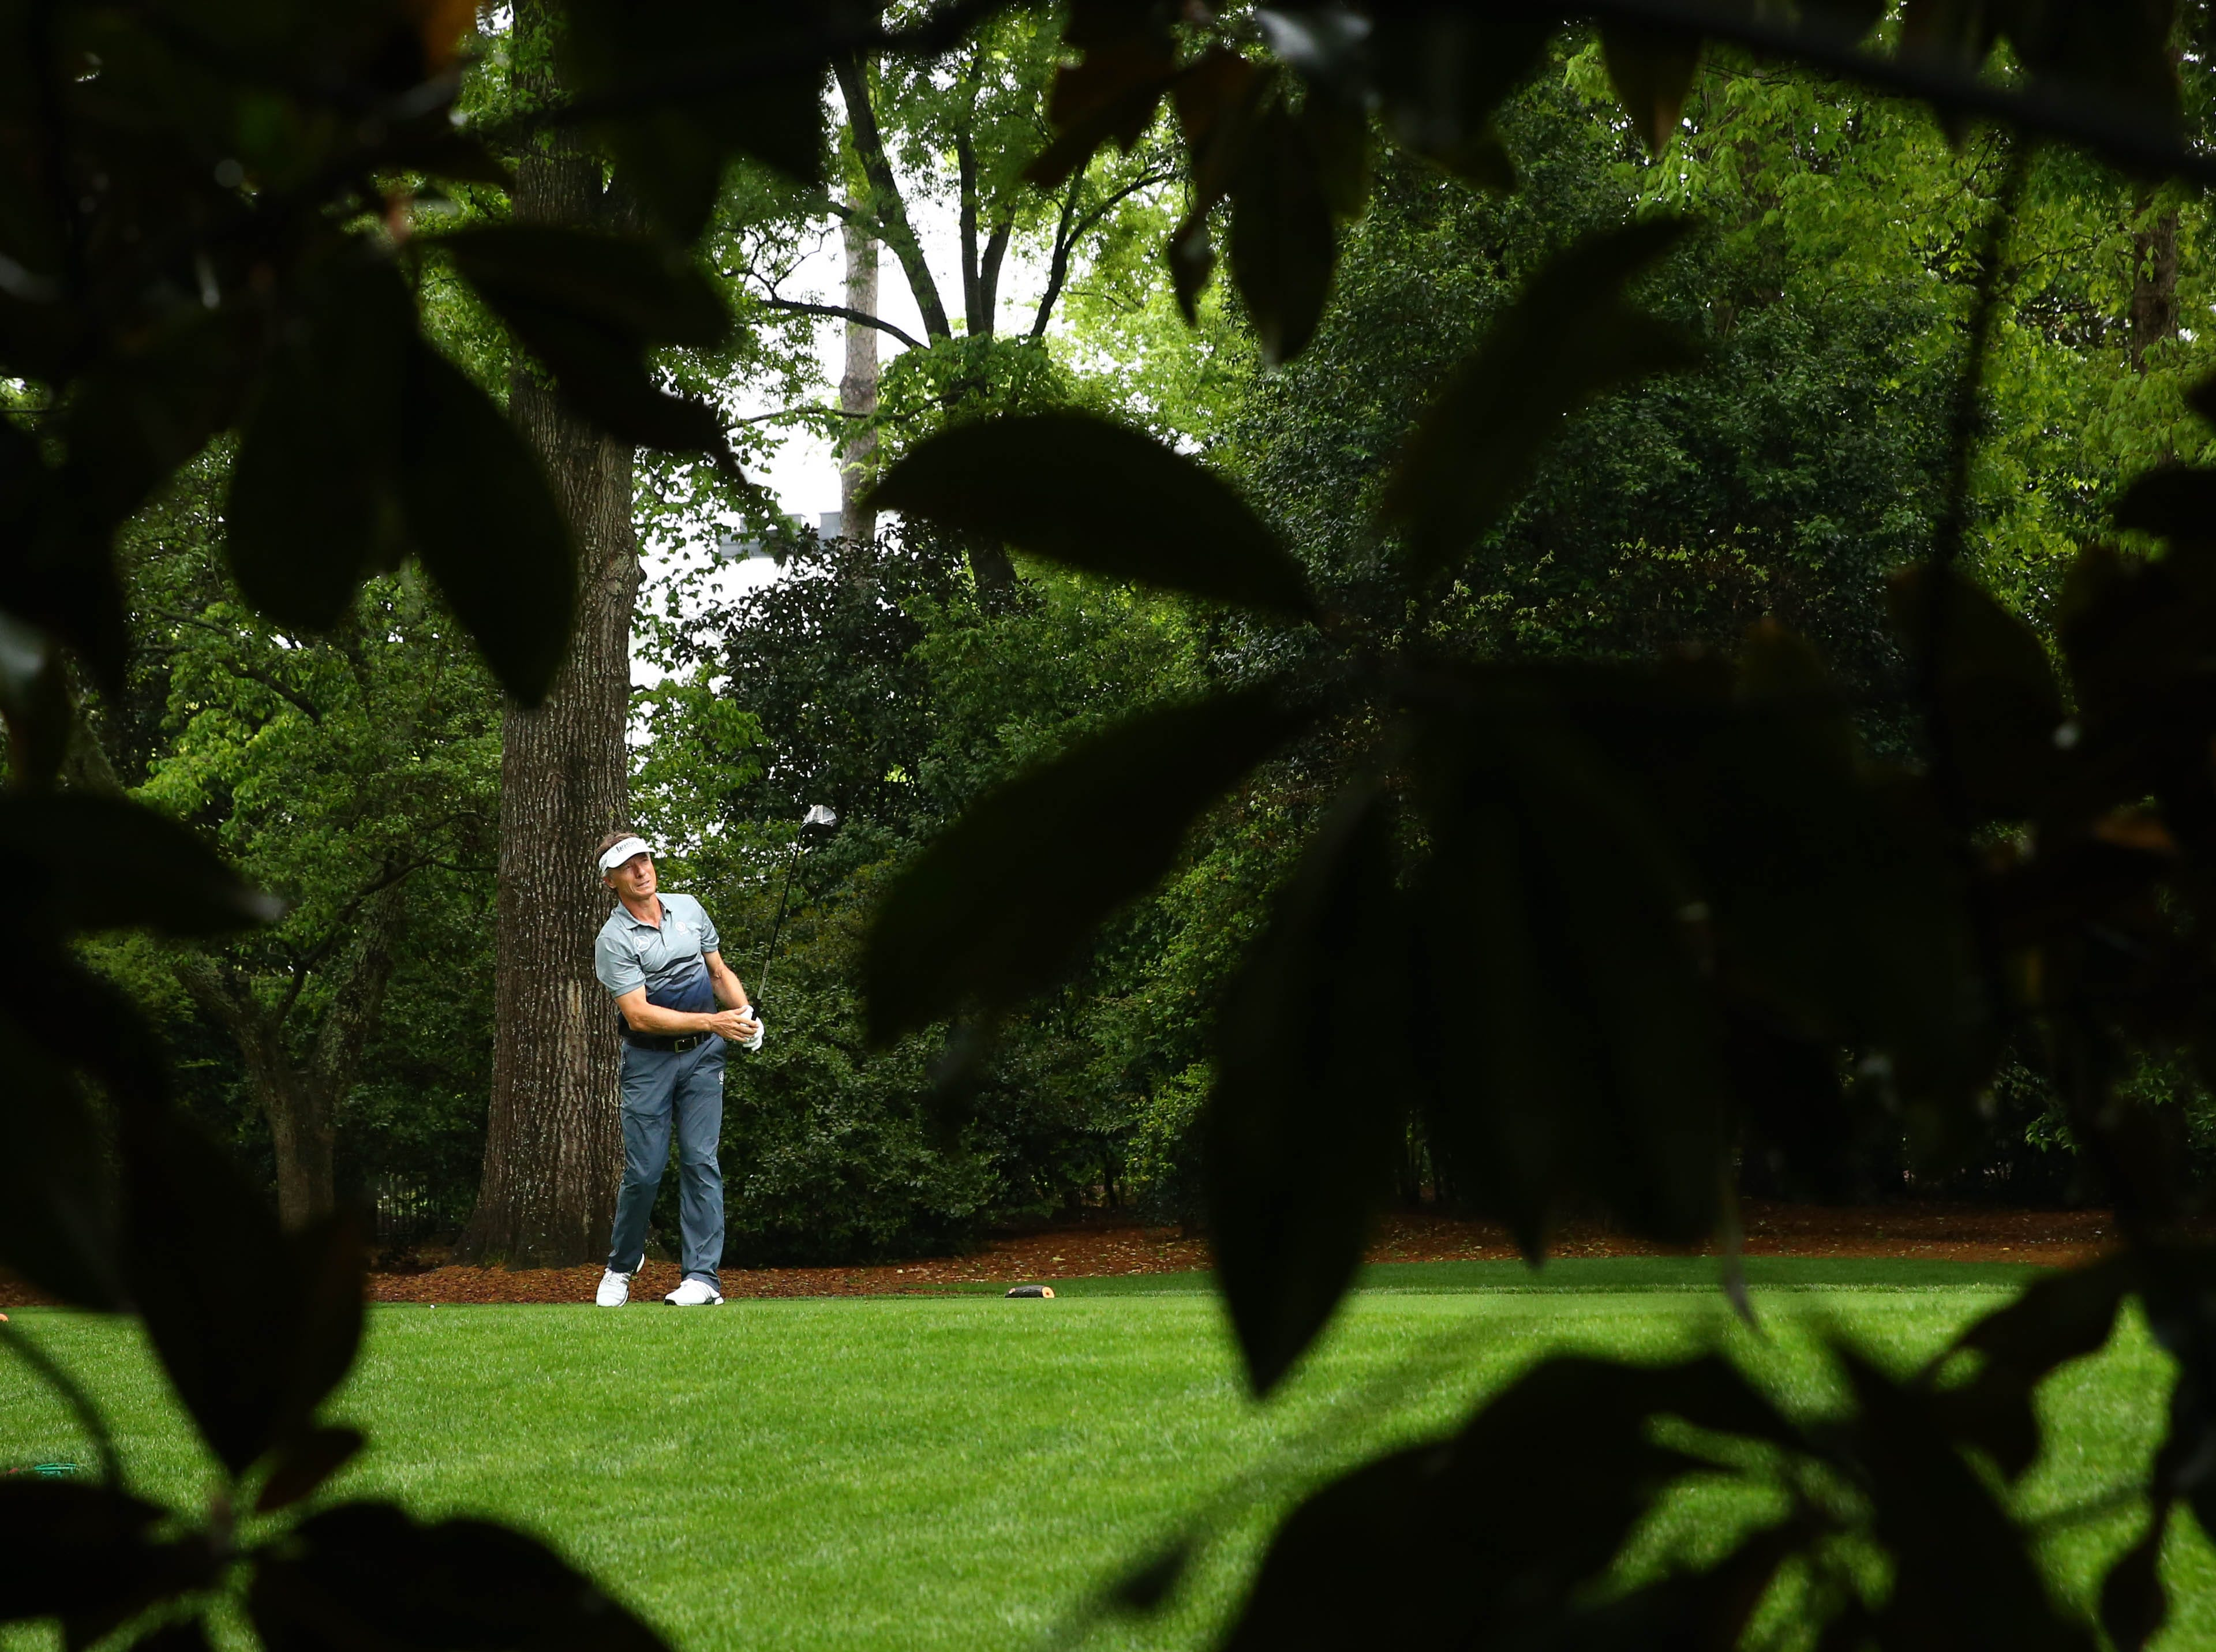 Apr 12, 2019; Augusta, GA, USA; Bernhard Langer hits his tee shot on the 2nd hole during the second round of The Masters golf tournament at Augusta National Golf Club. Mandatory Credit: Rob Schumacher-USA TODAY Sports